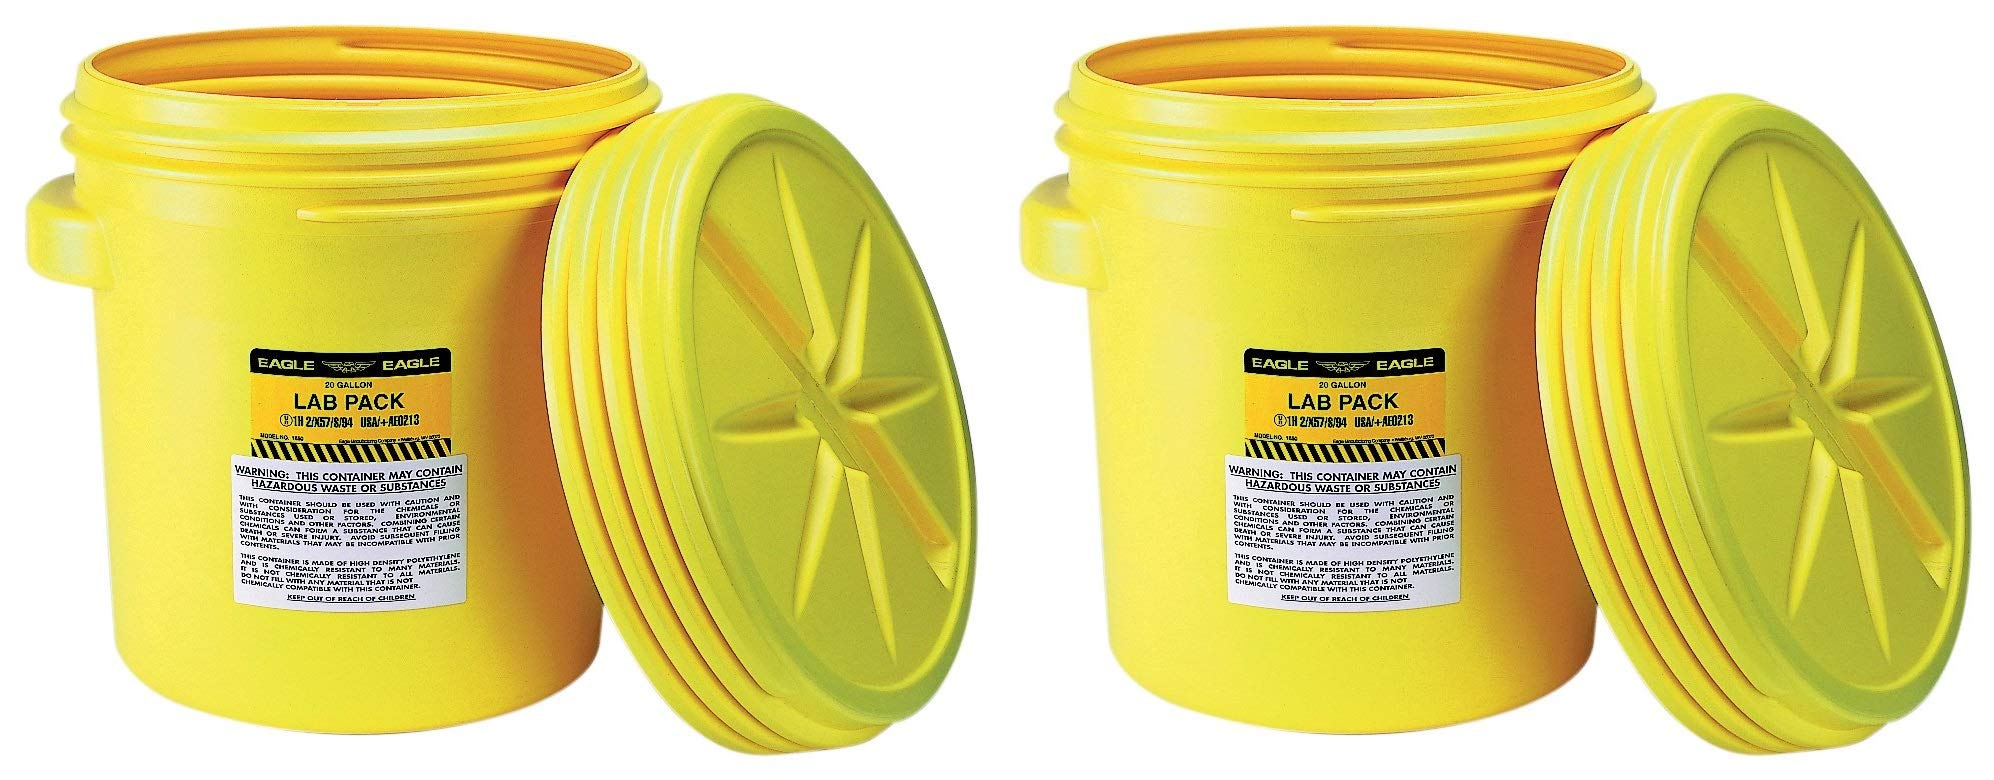 Eagle 1650 Yellow Blow-Molded HDPE Lab Pack with Screw Top Lid, 20 Gallon Capacity, 20.75'' Height, 20.5'' Diameter (Pack of 2)